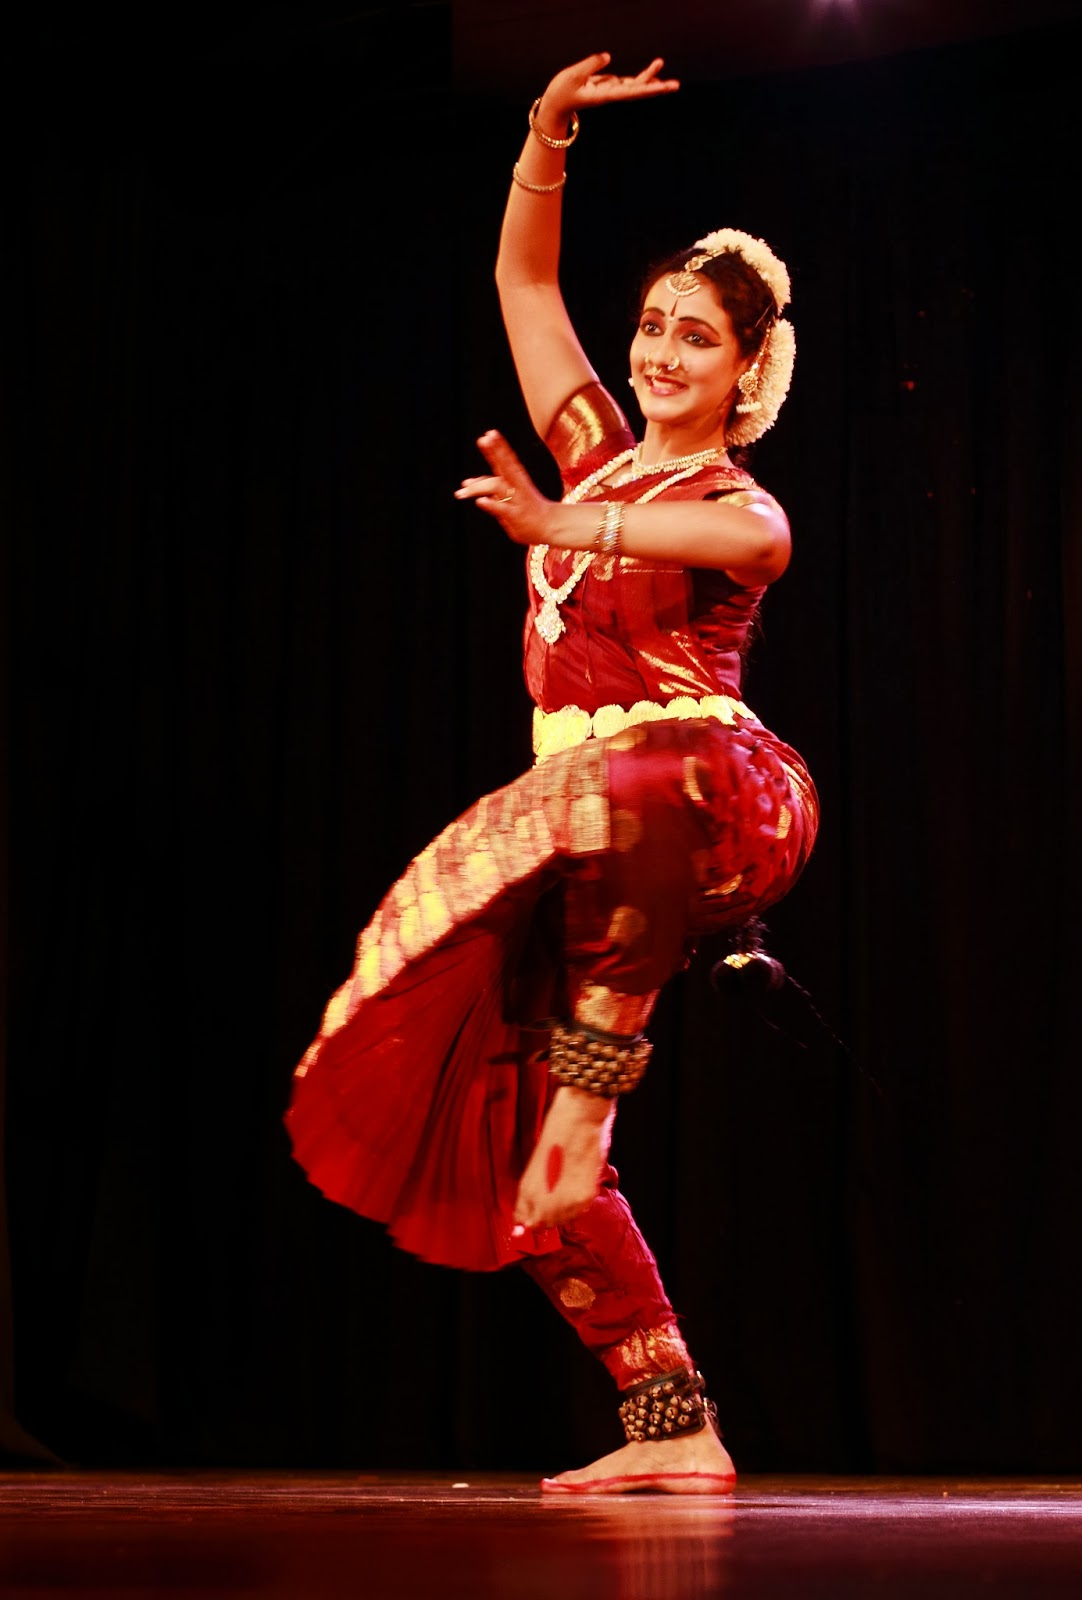 Download Bharatanatyam Dance Wallpaper Gallery